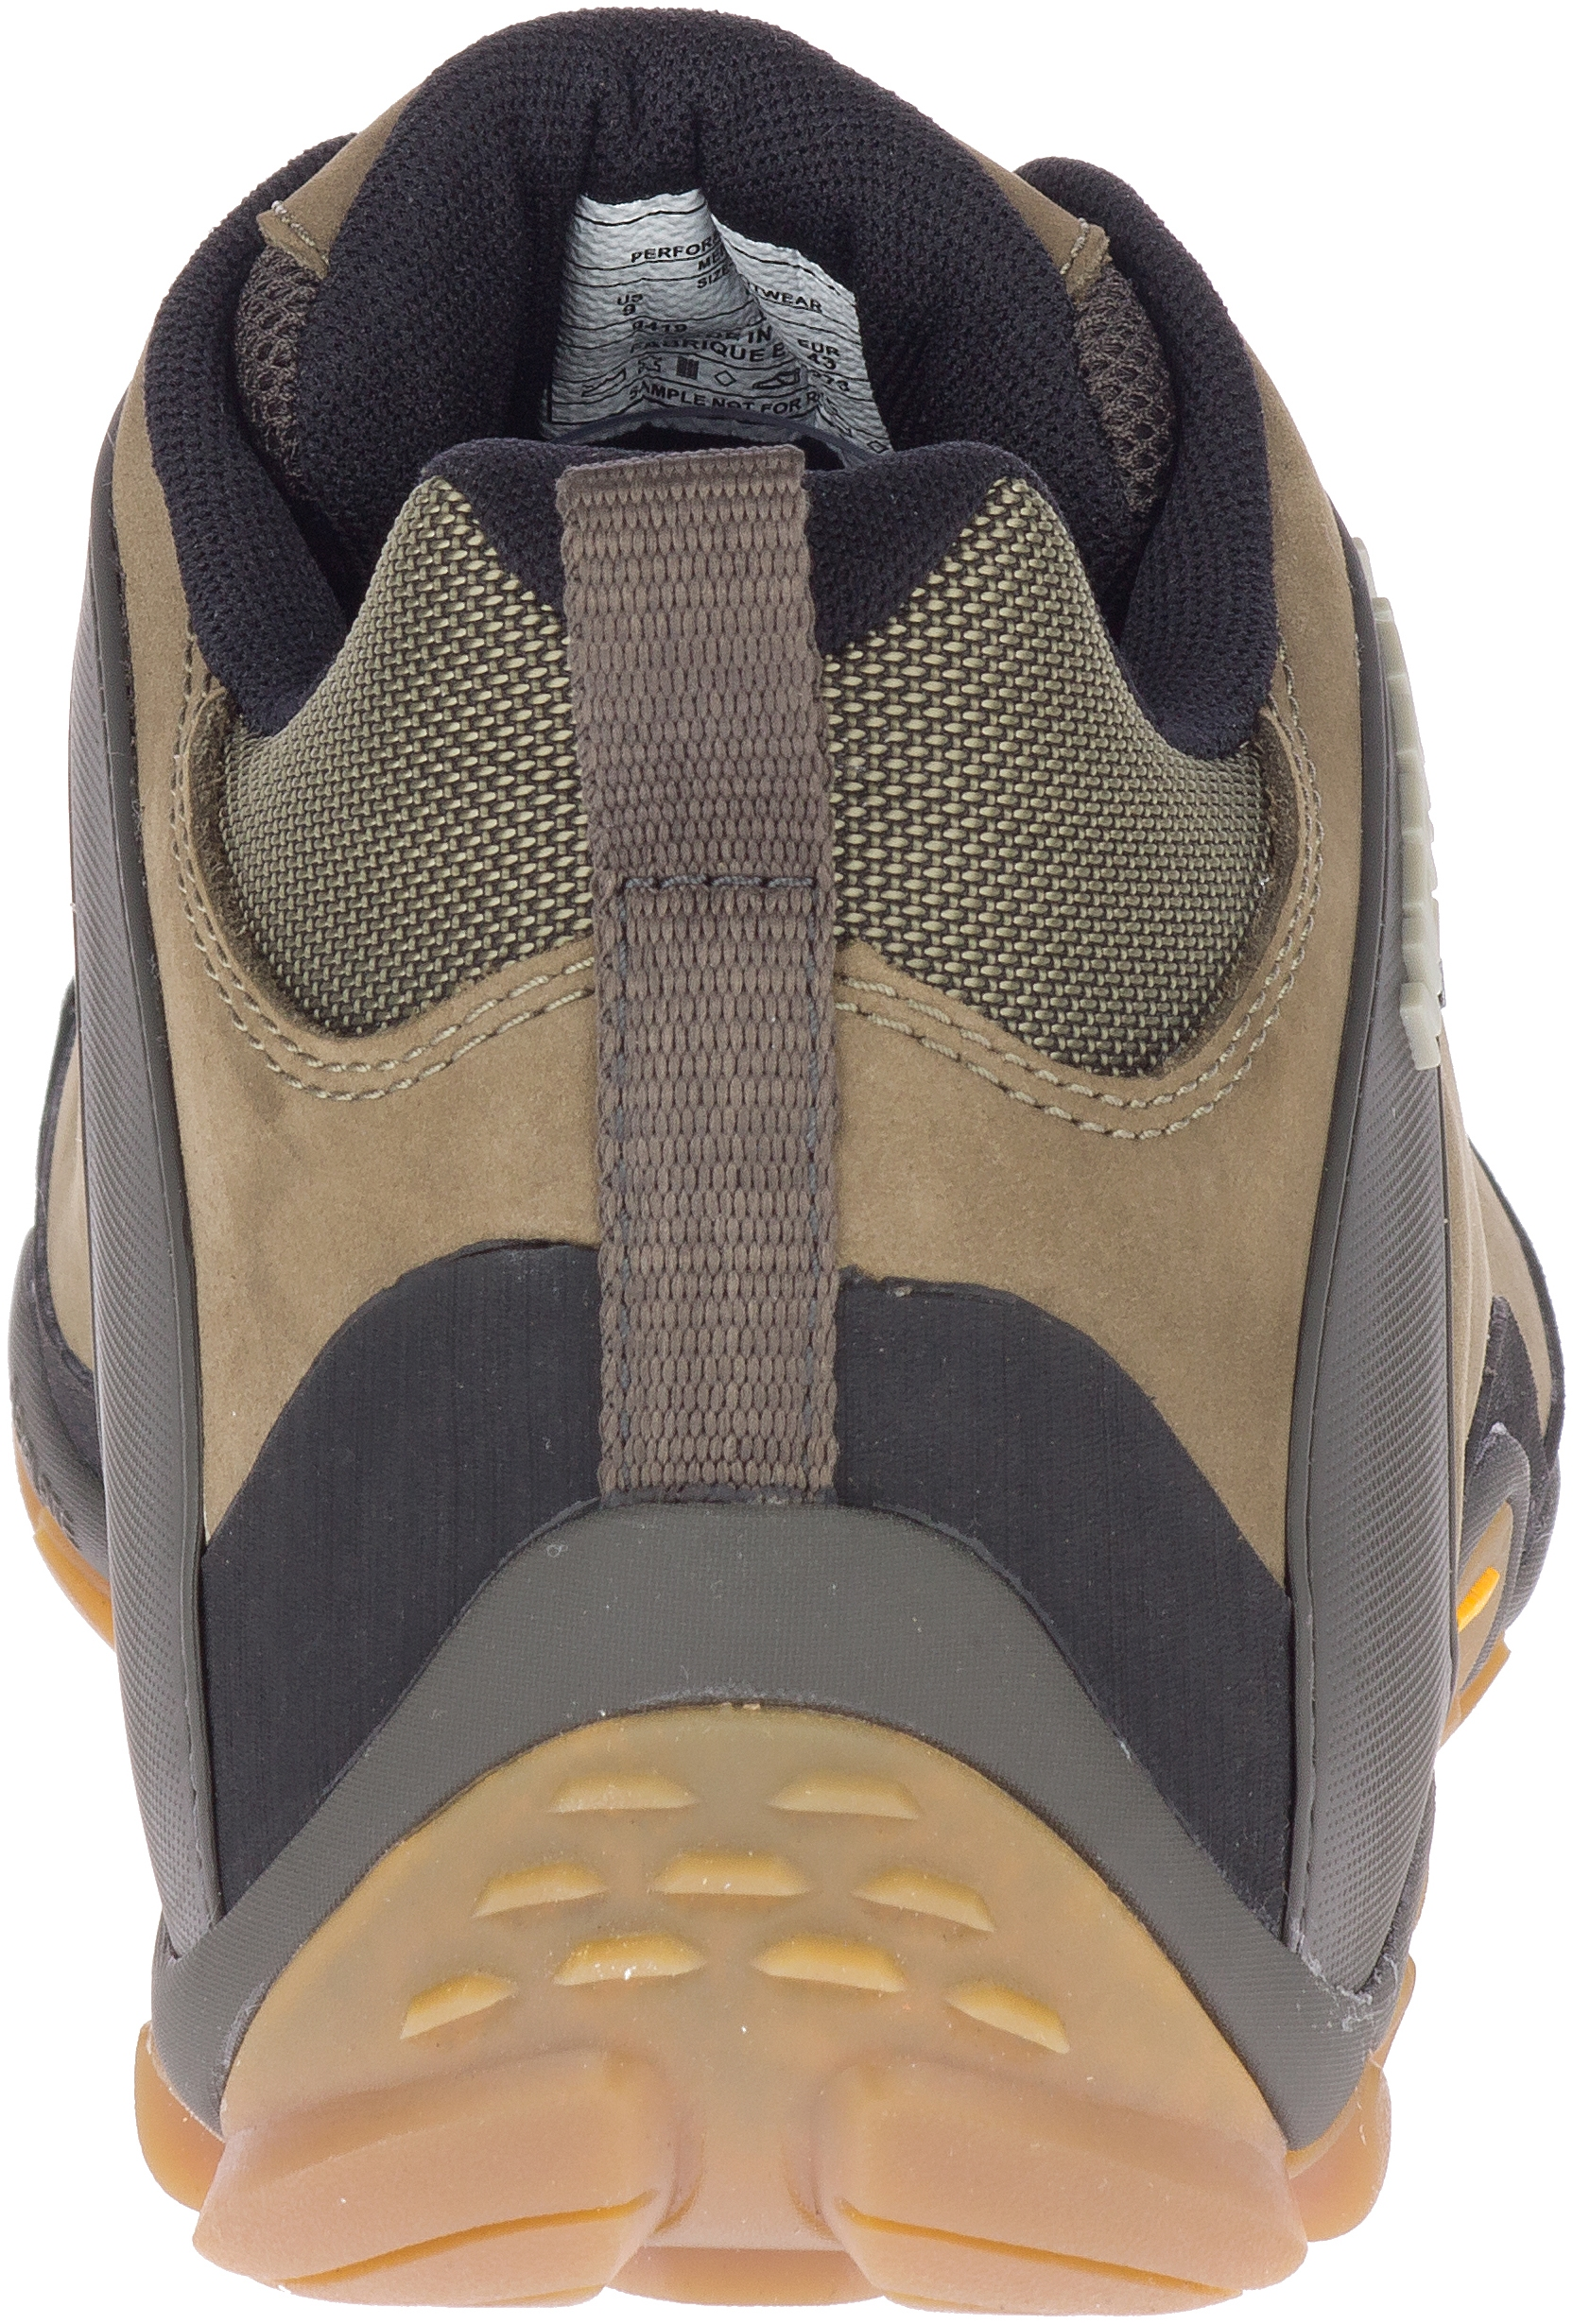 Chameleon 8 Leather GTX, Olive